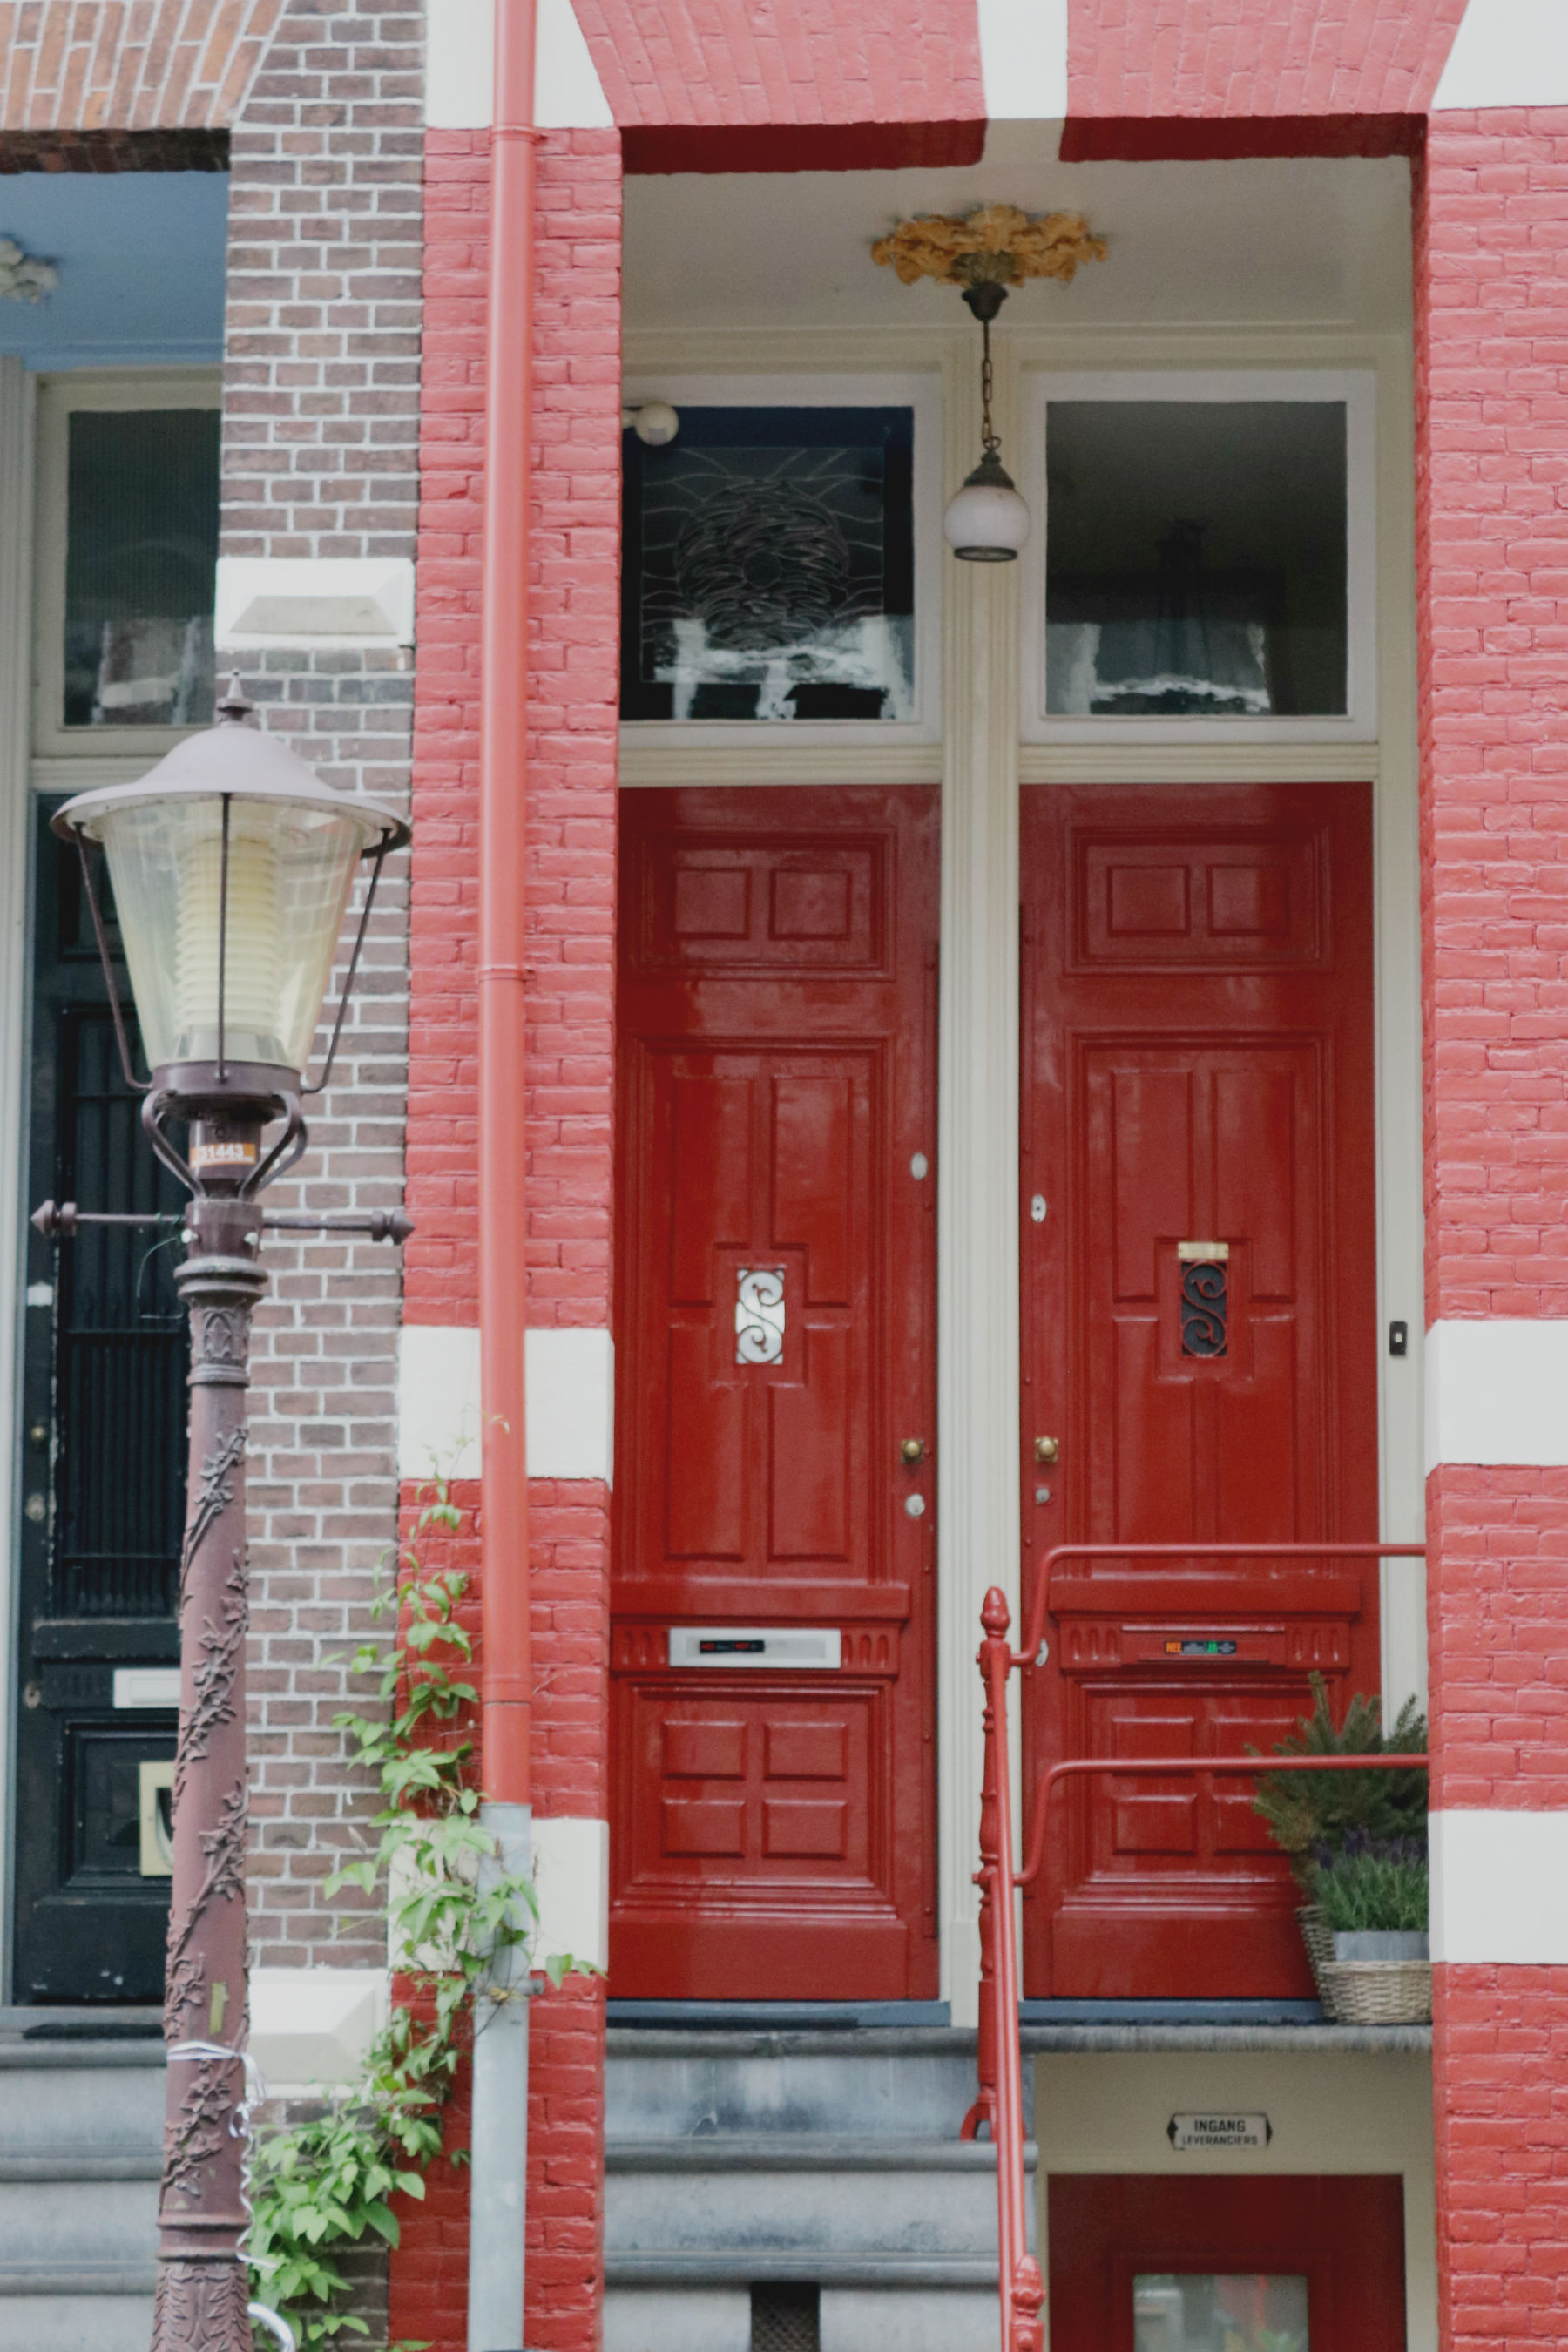 Two red front doors in Amsterdam